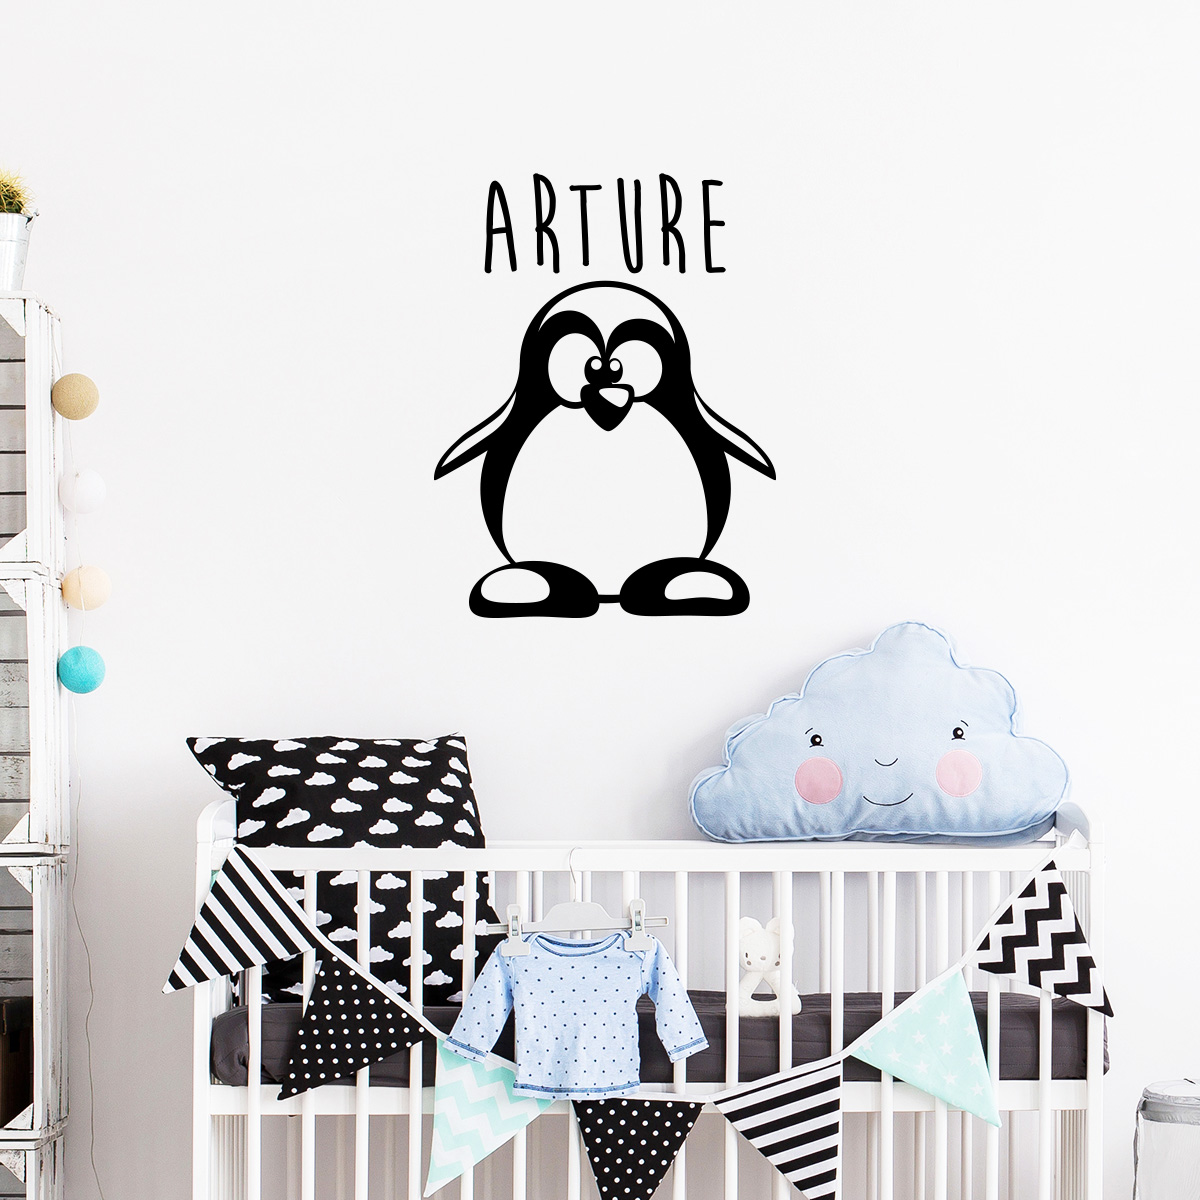 sticker pr nom personnalis adorable petit pingouin mini stickers pr nom perso ambiance sticker. Black Bedroom Furniture Sets. Home Design Ideas